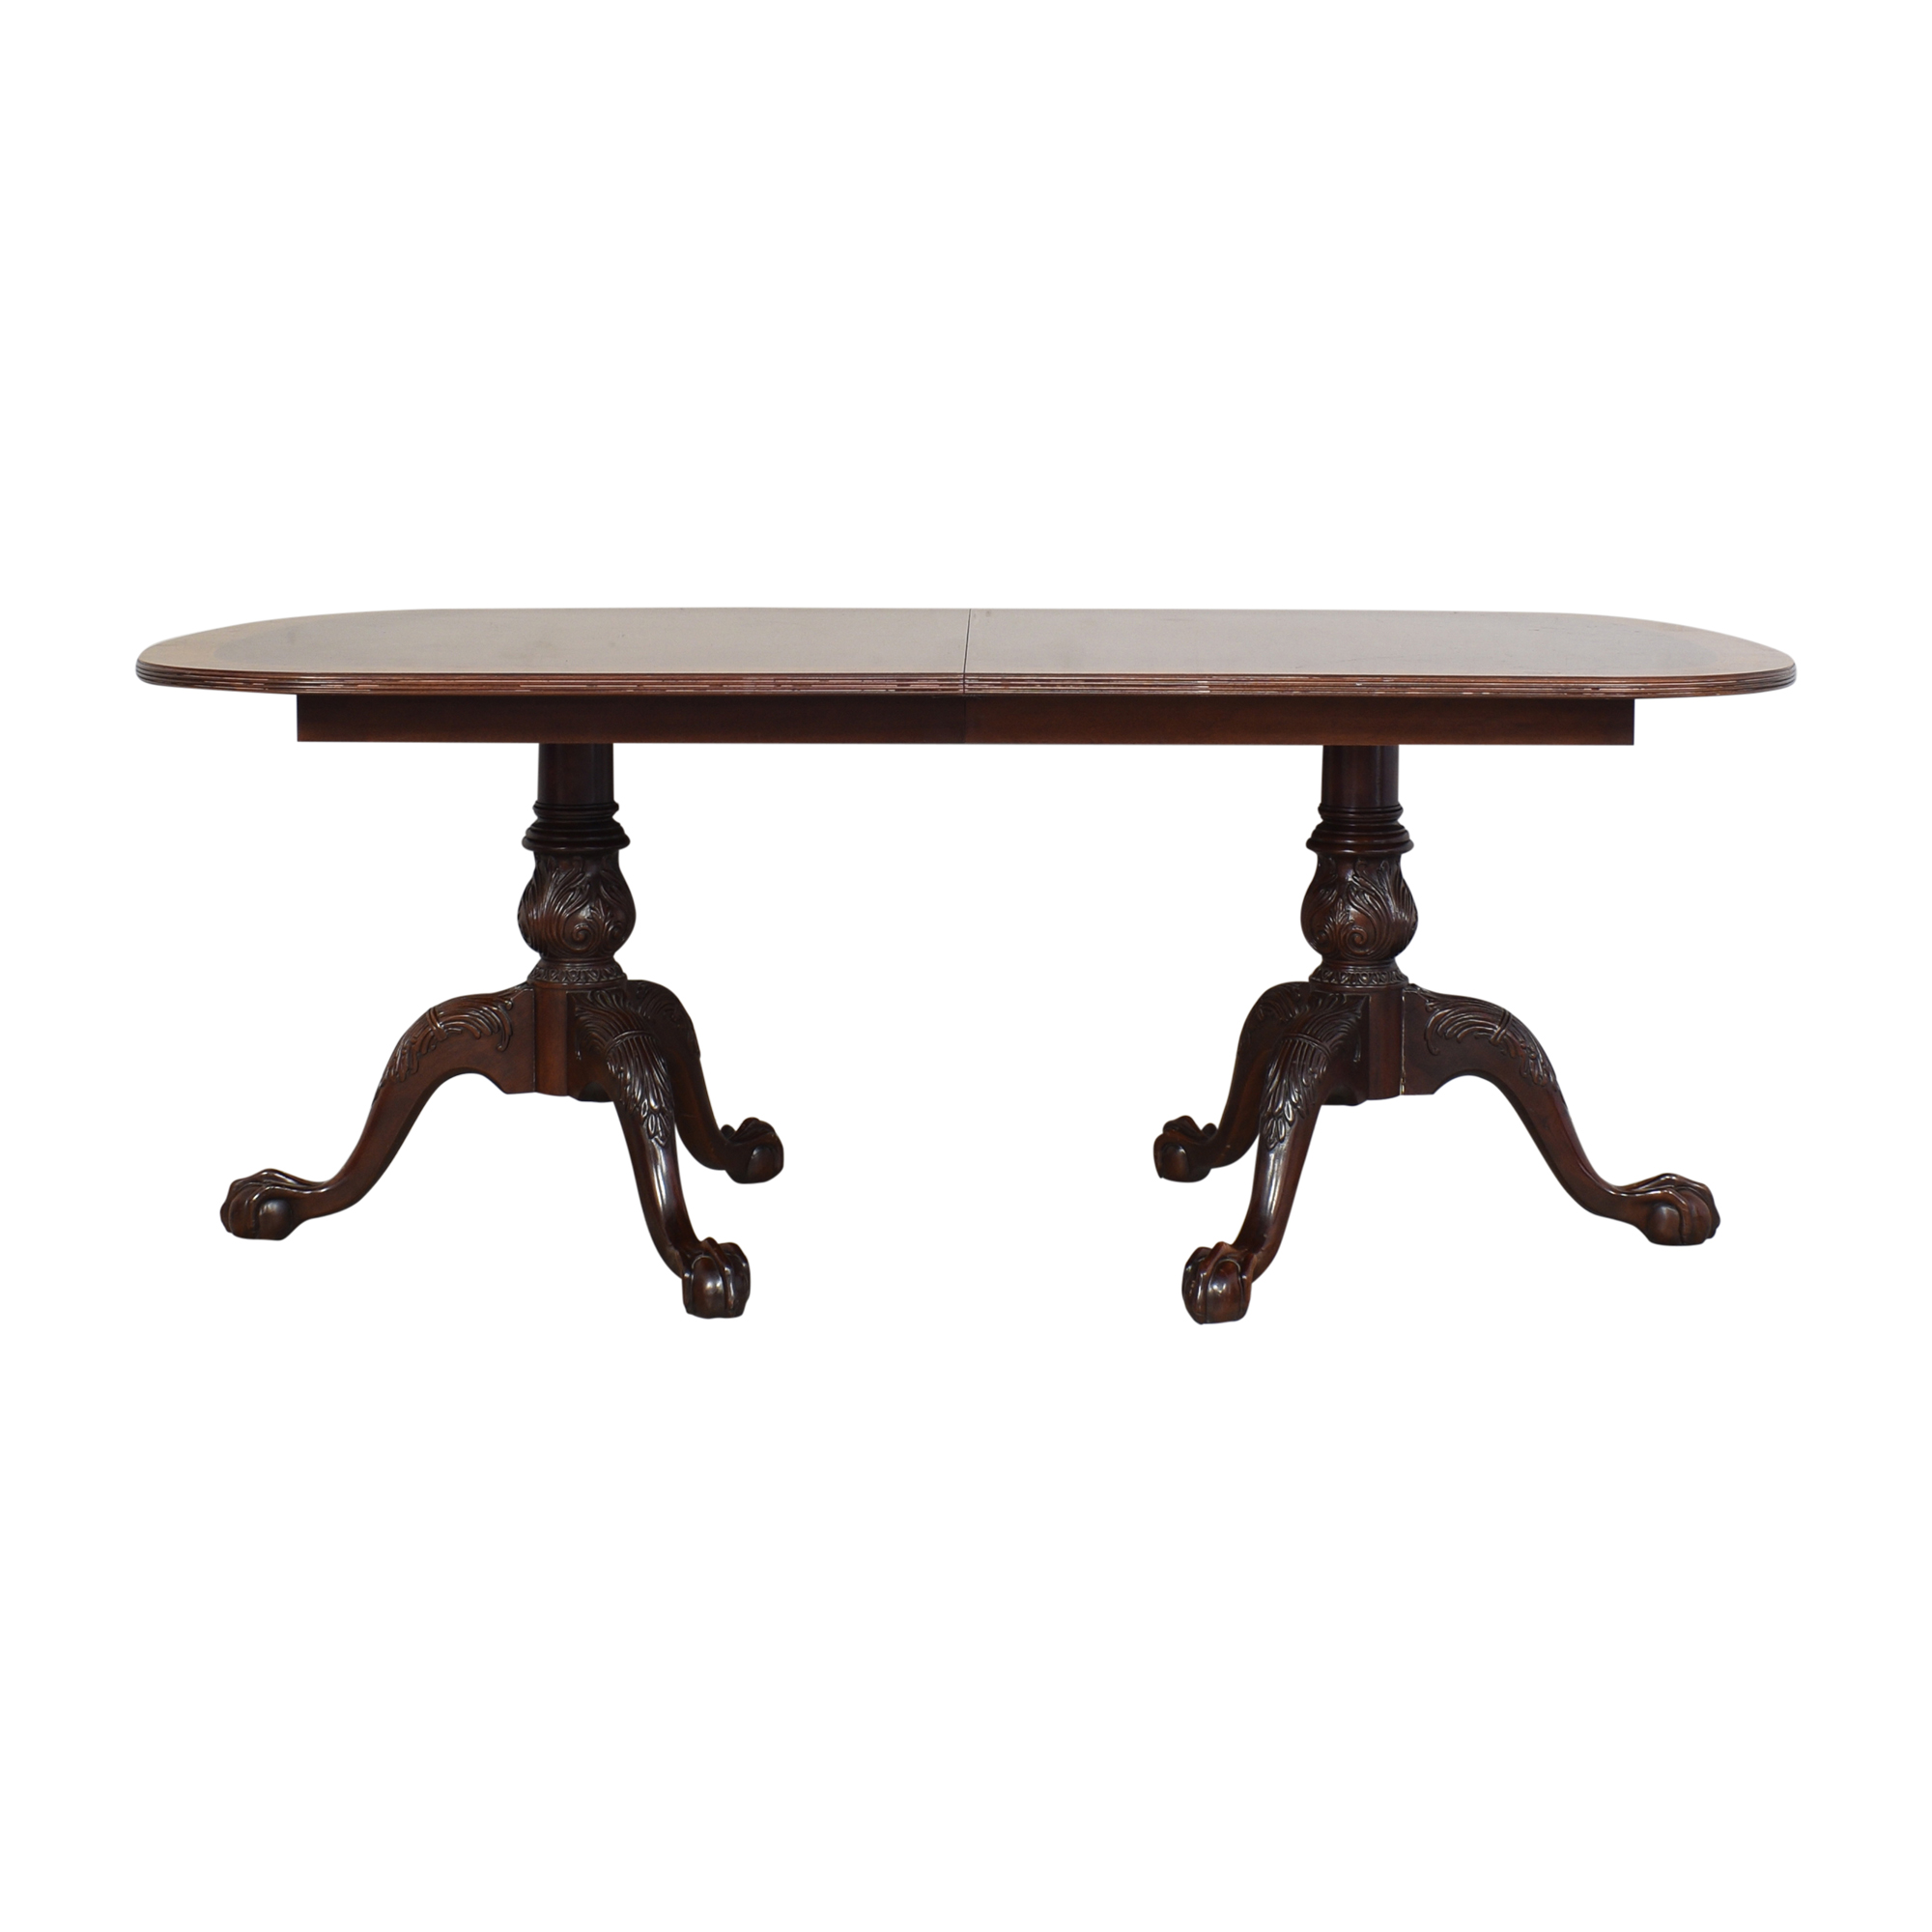 Councill Councill Double Pedestal Dining Table Dinner Tables